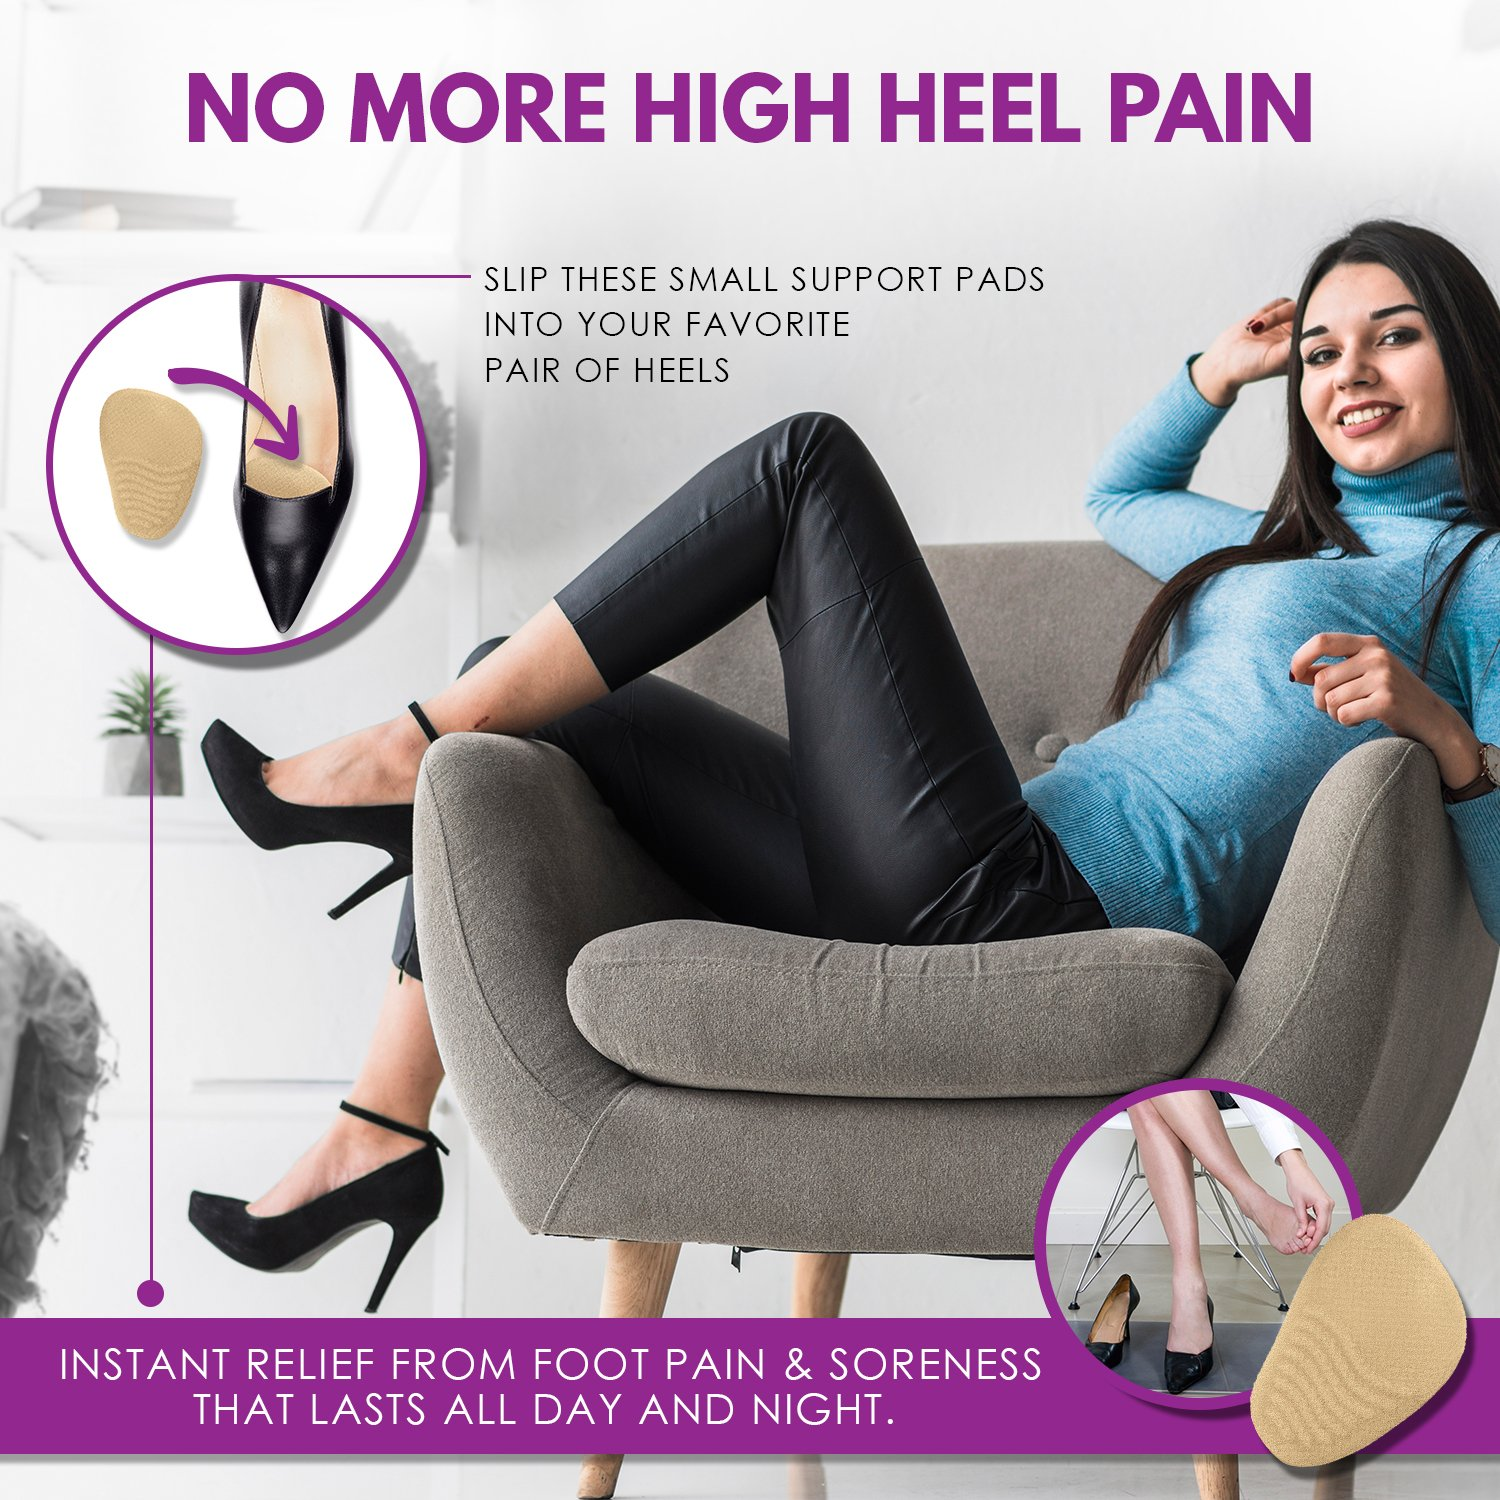 Metatarsal Pads for Women (4 Pairs: 8 Pieces) - Ball of Foot Cushions and High Heel Shoe Inserts | Protect Your Feet | Pain Relief from Neuroma, Bunions, Blisters, Callus, Metatarsalgia and Forefoot by Chambellan (Image #2)